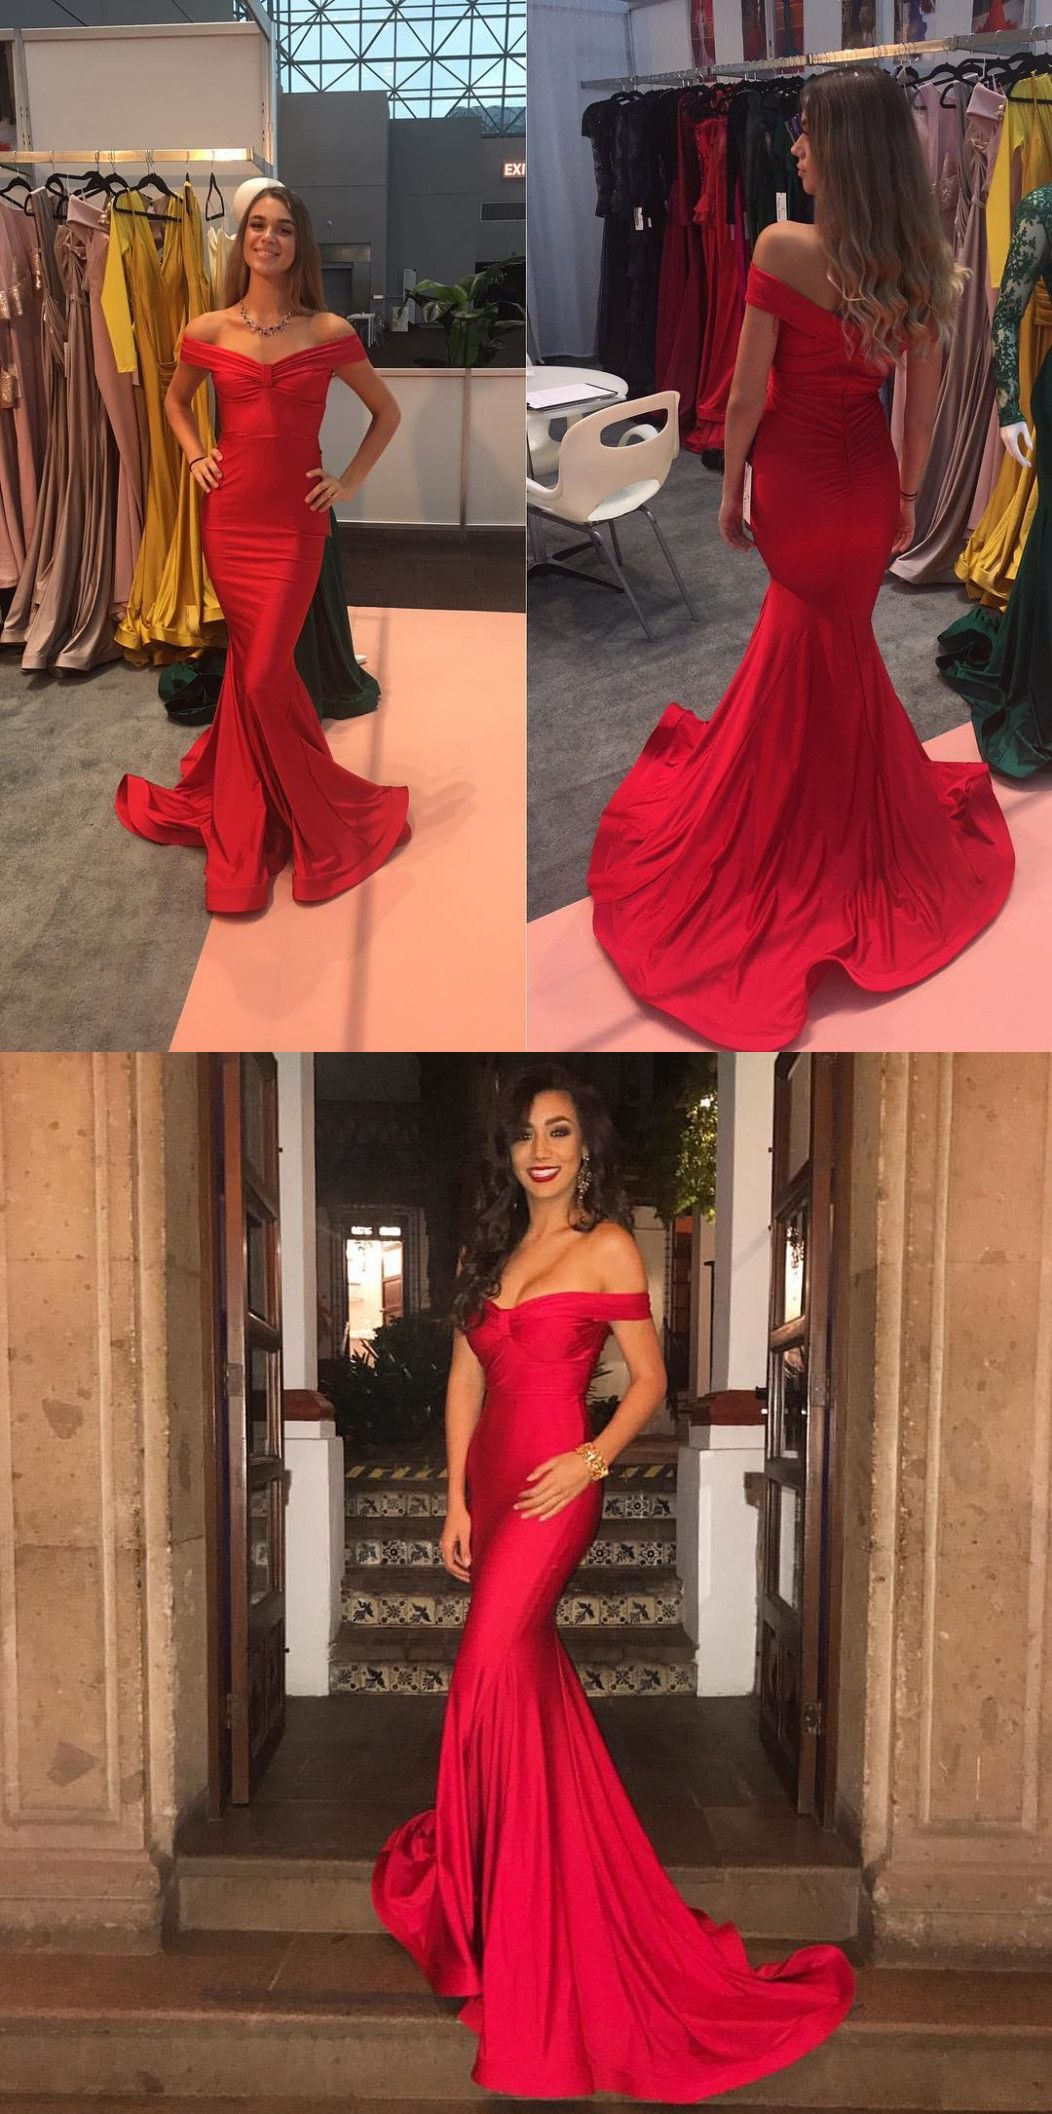 fbc898131d3 Gorgeous Red Long Formal Dress - Off the Shoulder Mermaid